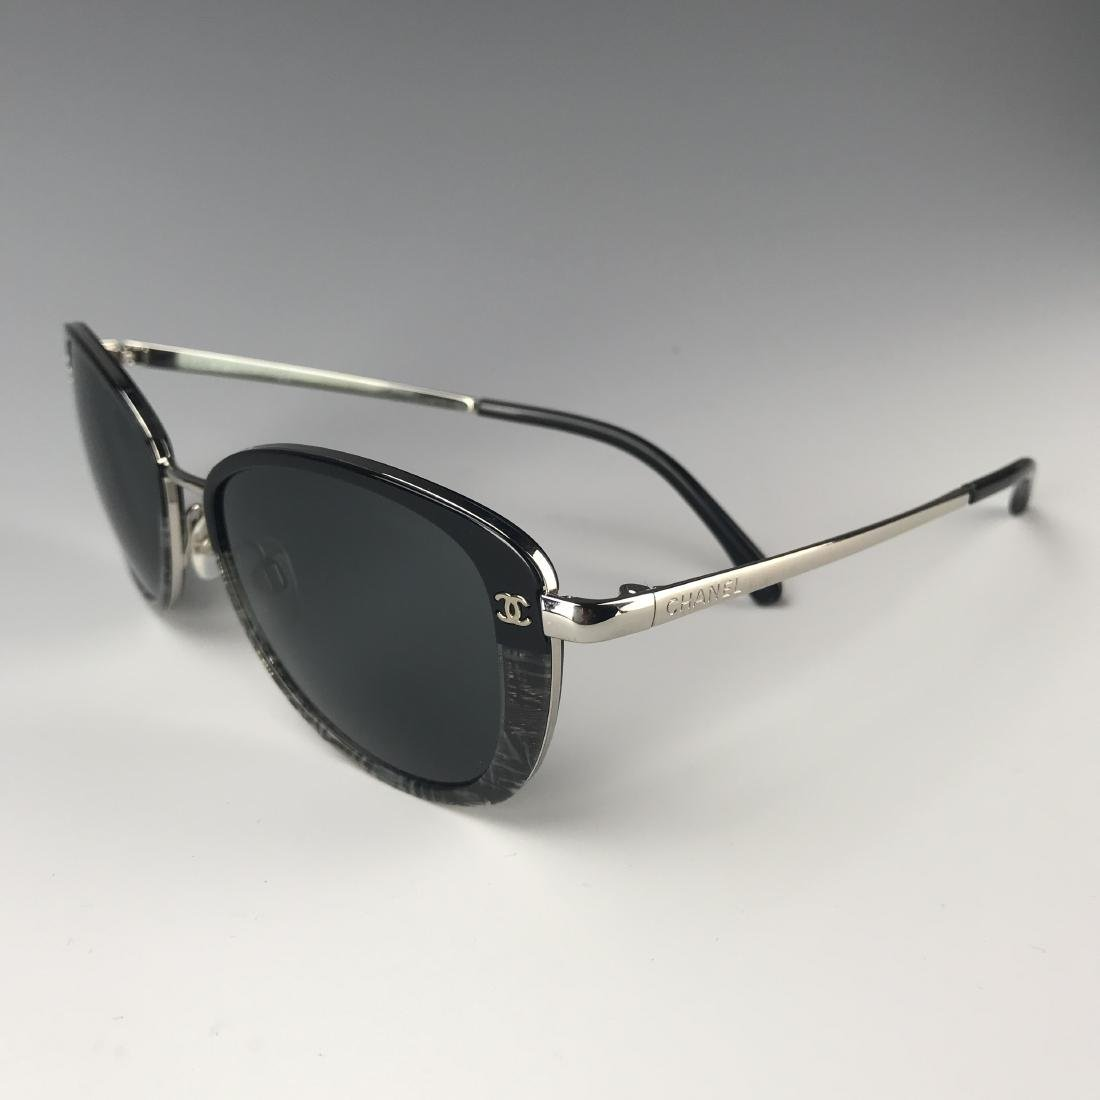 Authentic Chanel Sunglasses - 3